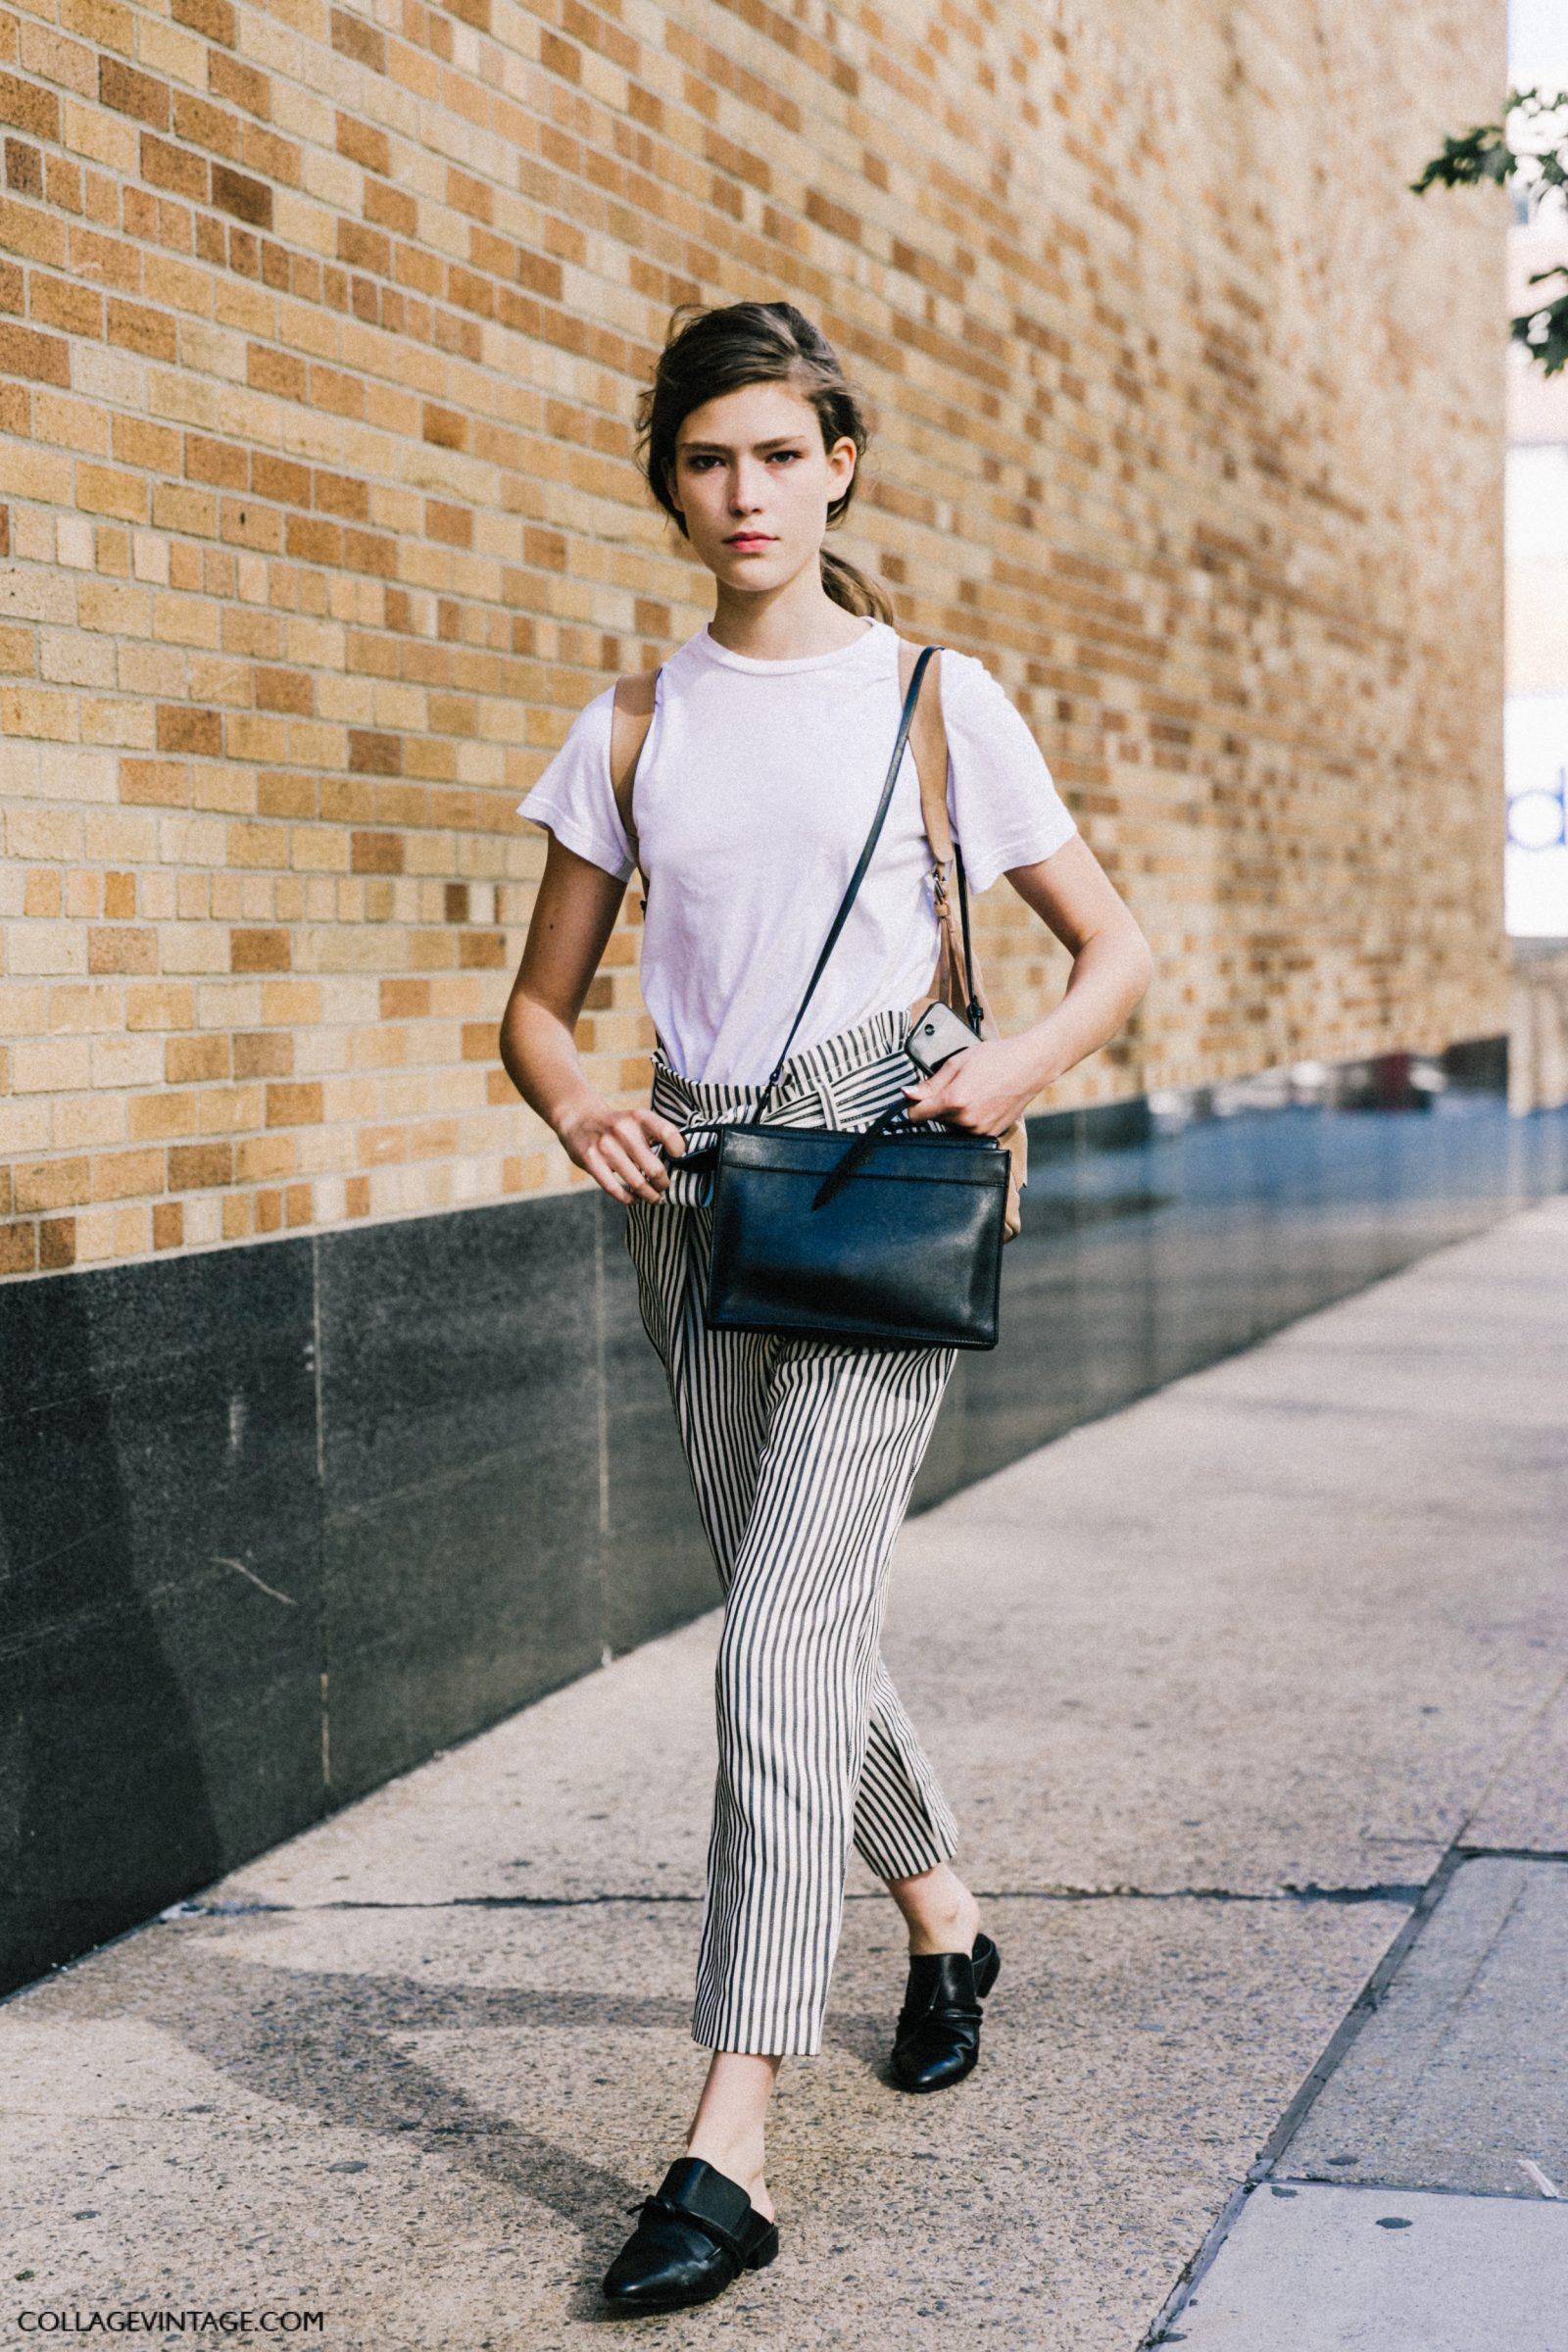 nyfw-new_york_fashion_week_ss17-street_style-outfits-collage_vintage-vintage-phillip_lim-the-row-proenza_schouler-rossie_aussolin-401